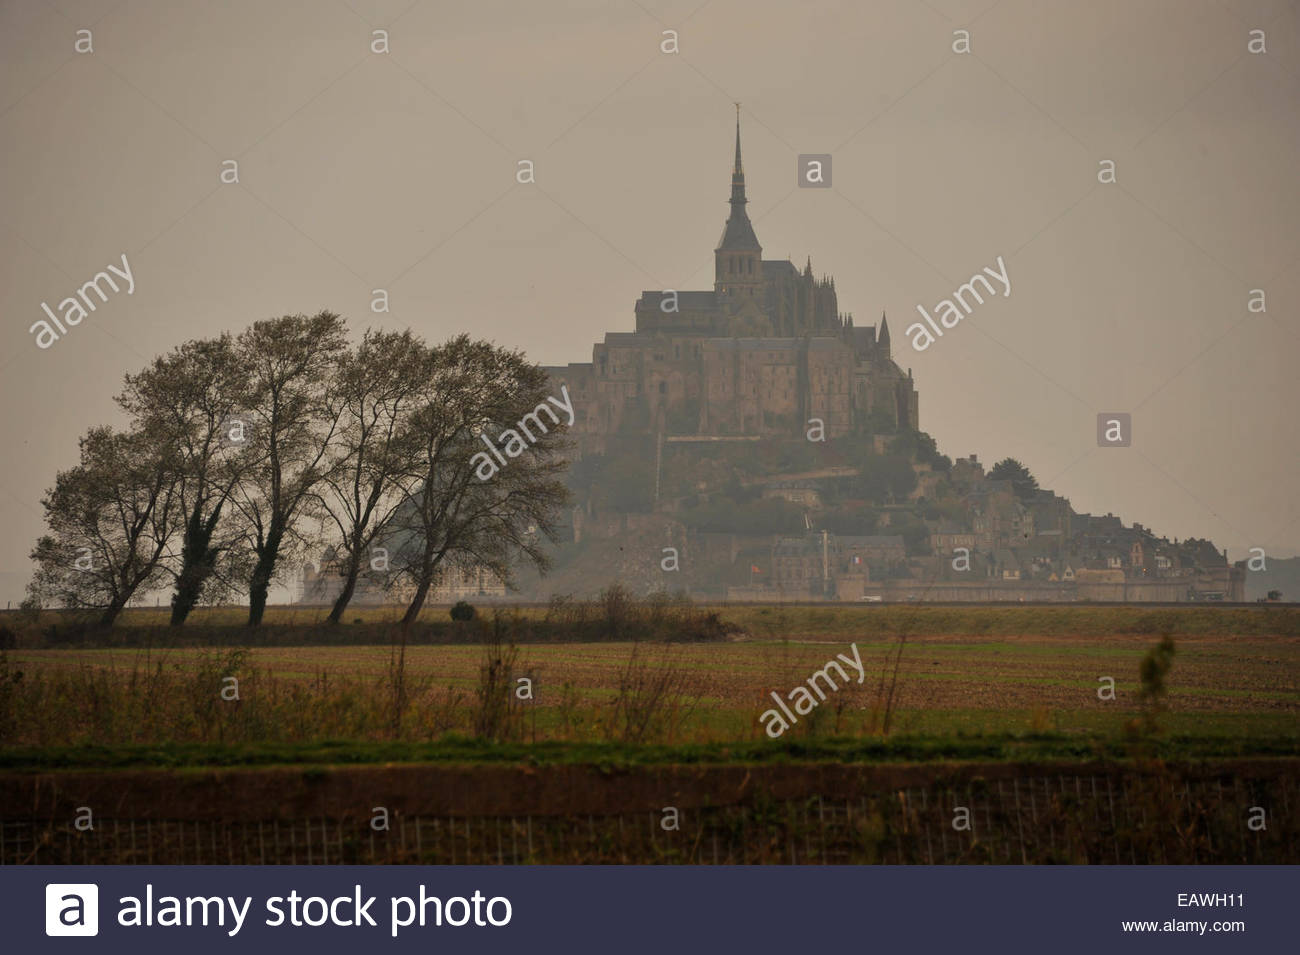 Misty, view of Mont St. Michel conveys a sense of mystery. - Stock Image